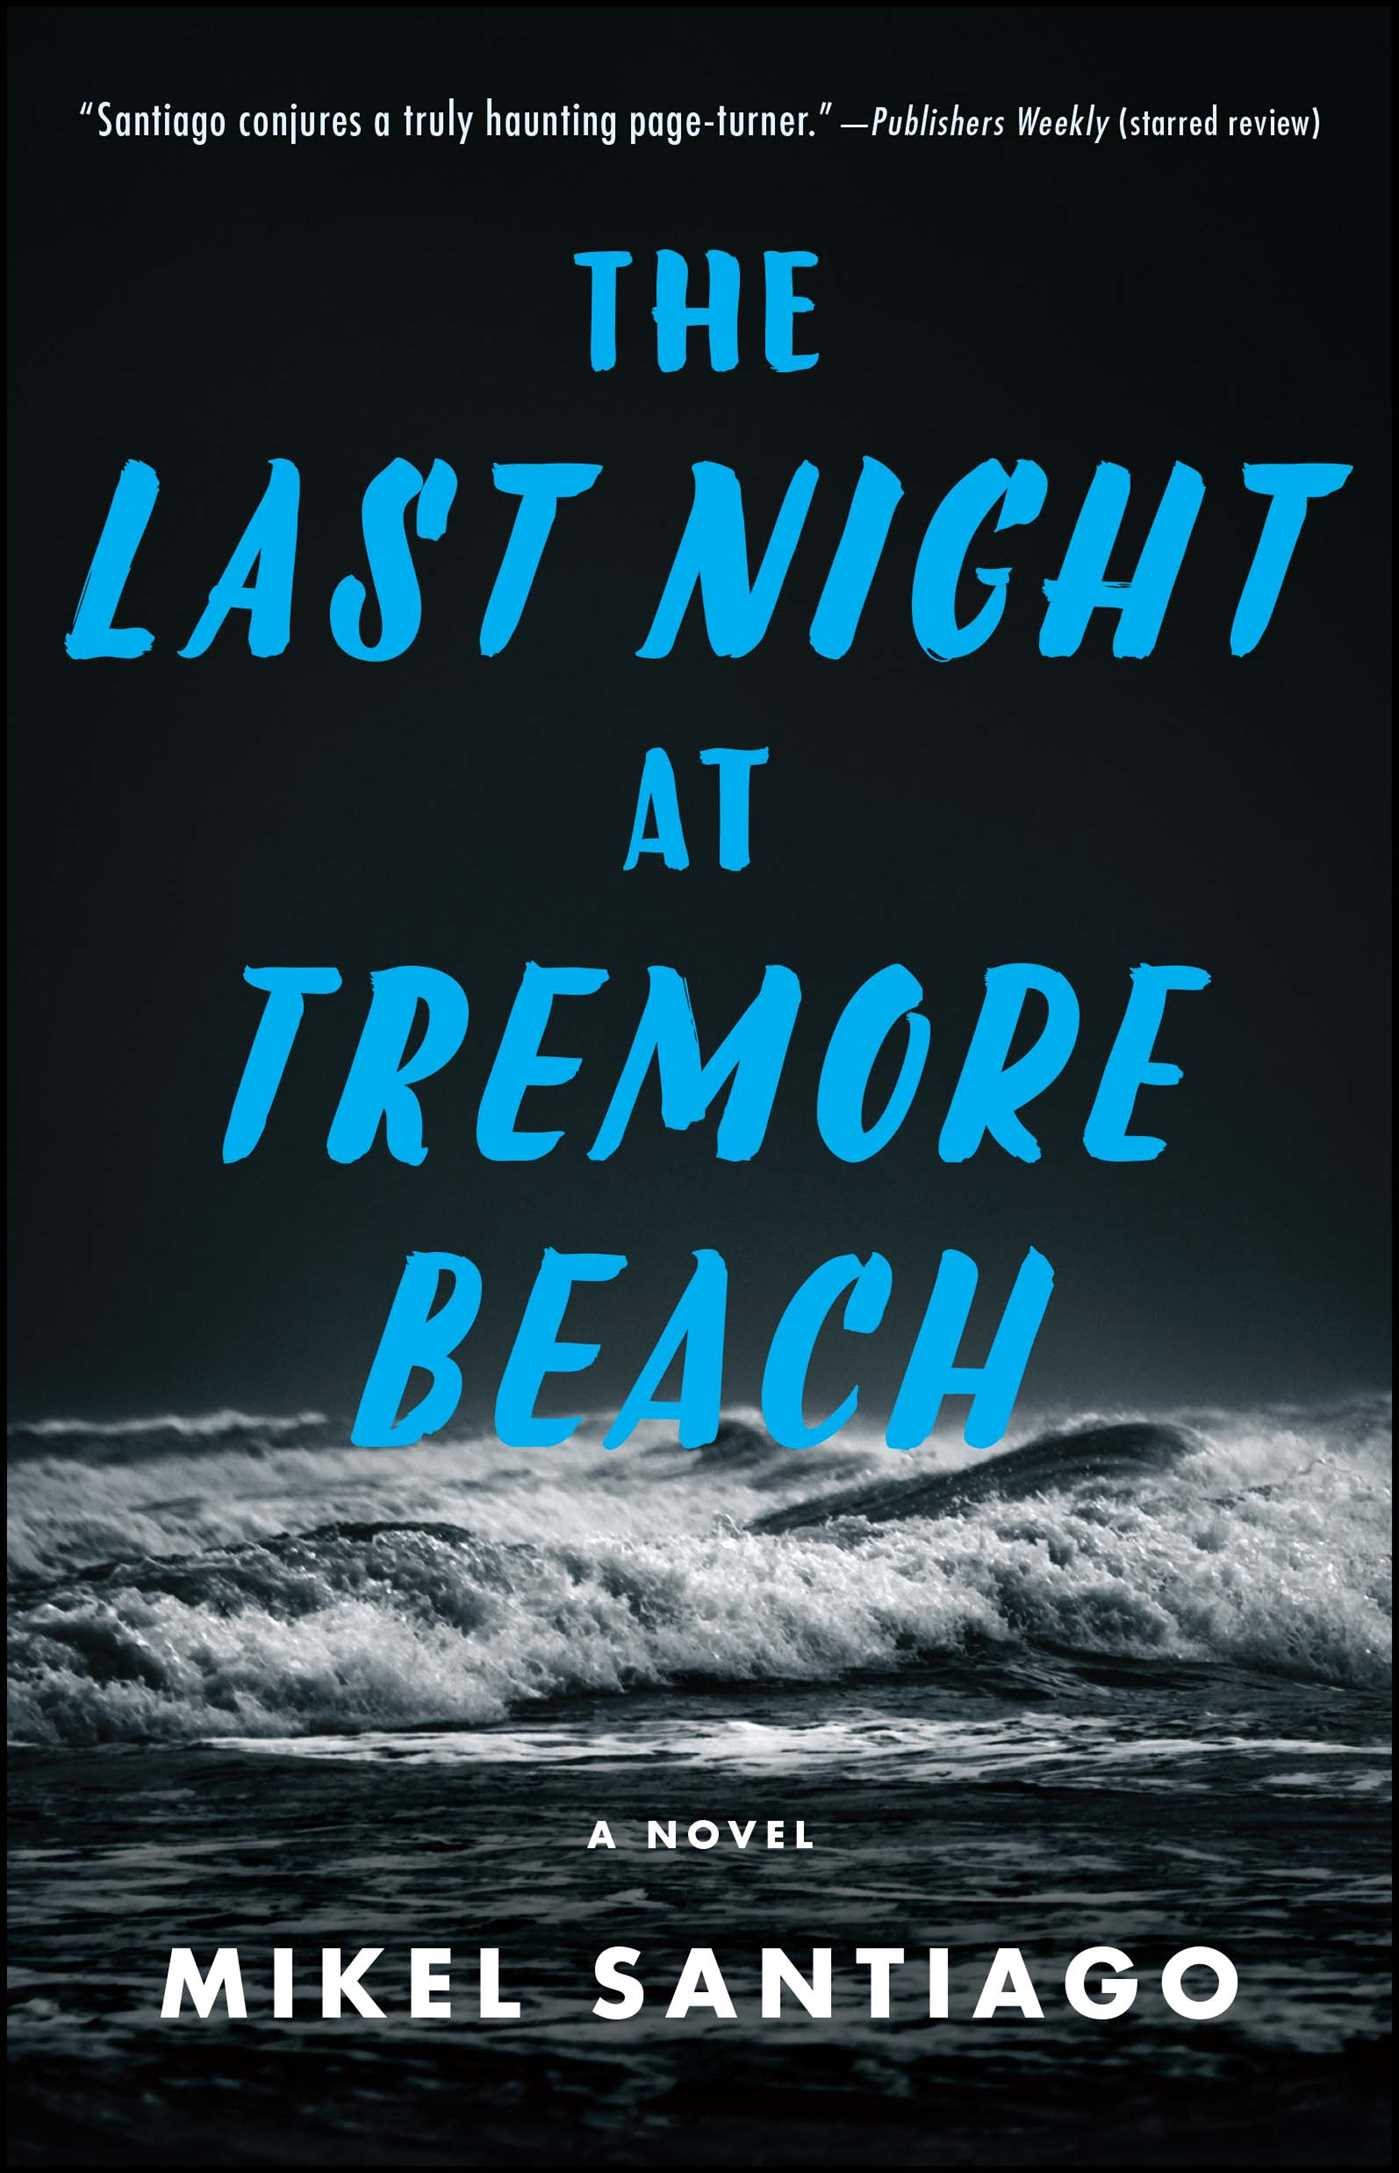 The last night at tremore beach 9781501102257 hr